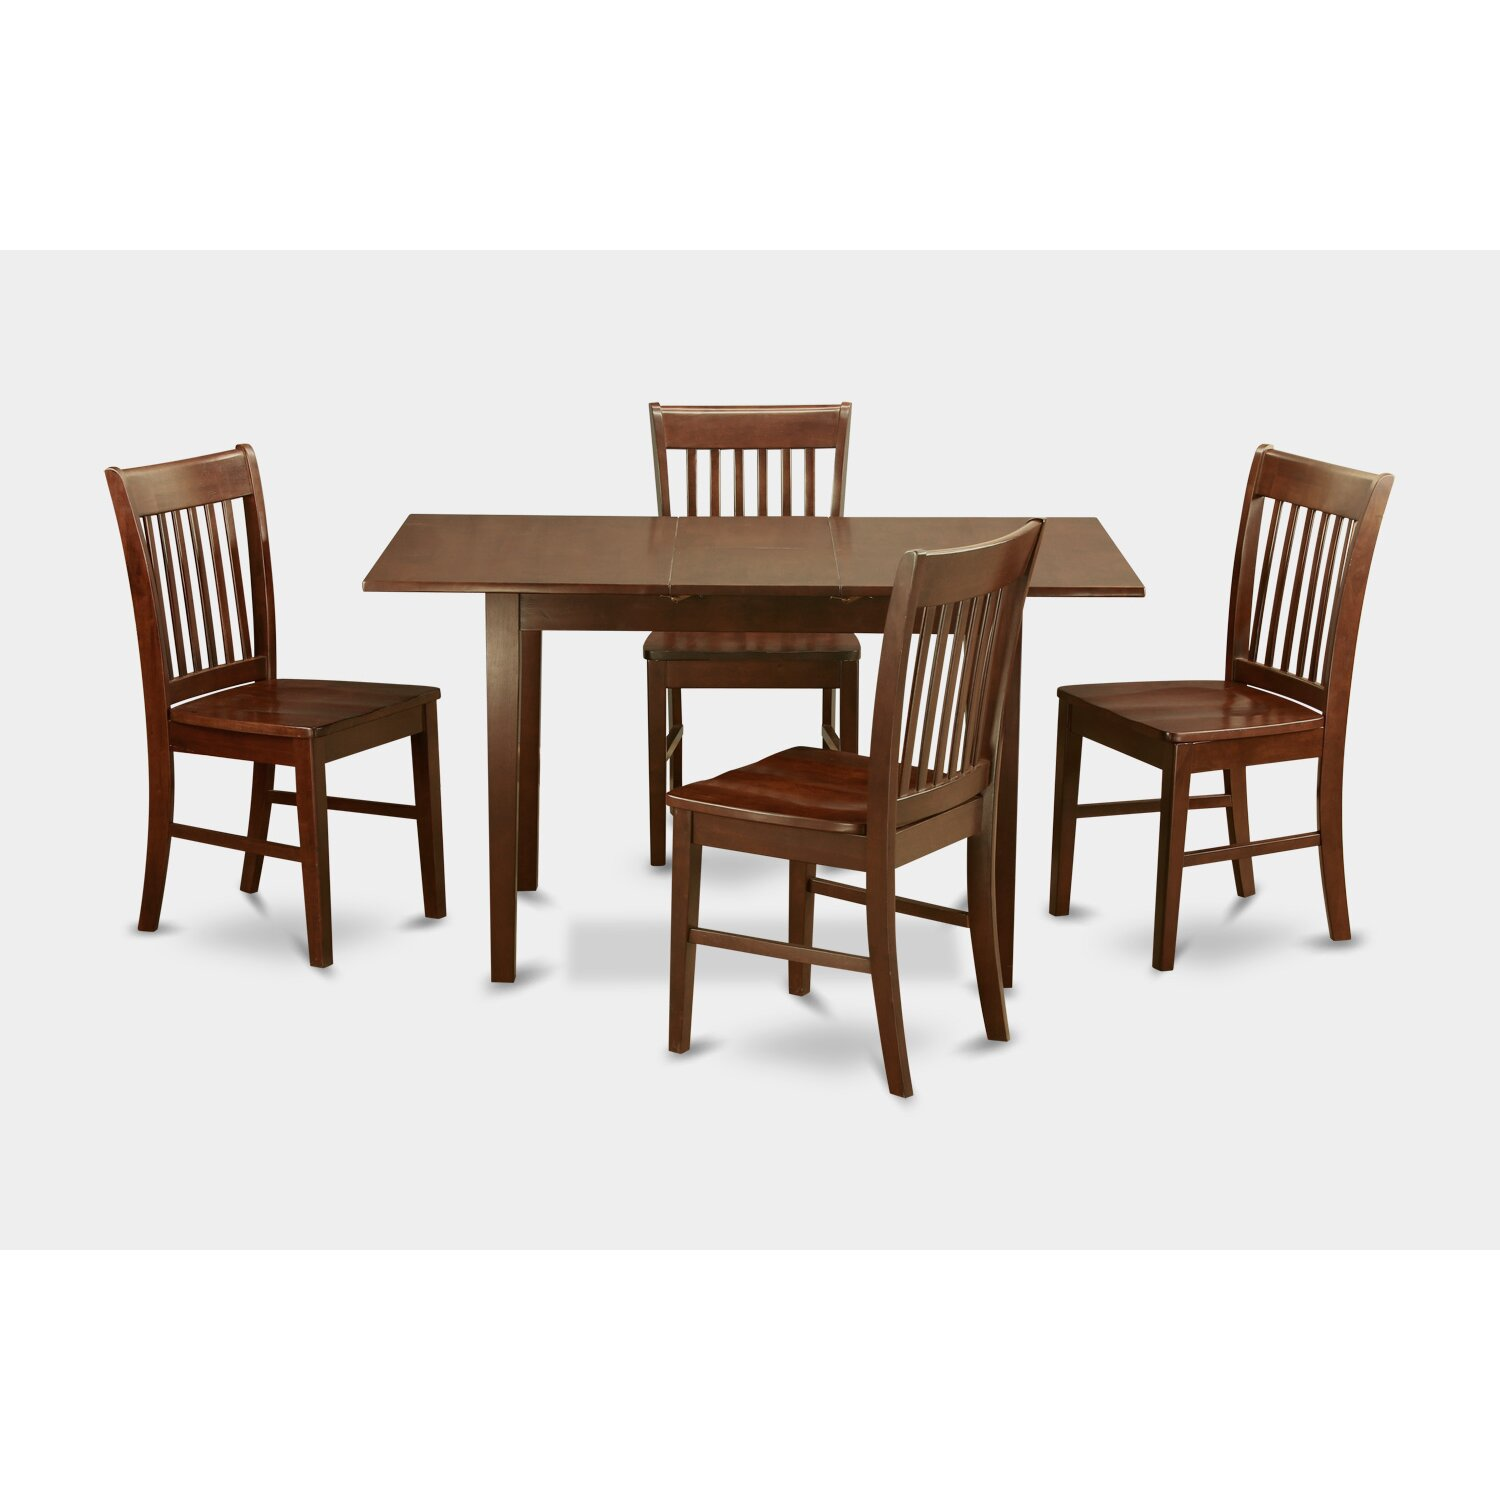 East West Norfolk 5 Piece Dining Set & Reviews  Wayfair. Steering Wheel Desk. Custom Made Corner Desk. Broyhill Dining Table. Jewelry Inserts For Drawers. Standing Desk Productivity. Most Expensive Office Desk. Home Office Desk Singapore. Portable Coffee Table